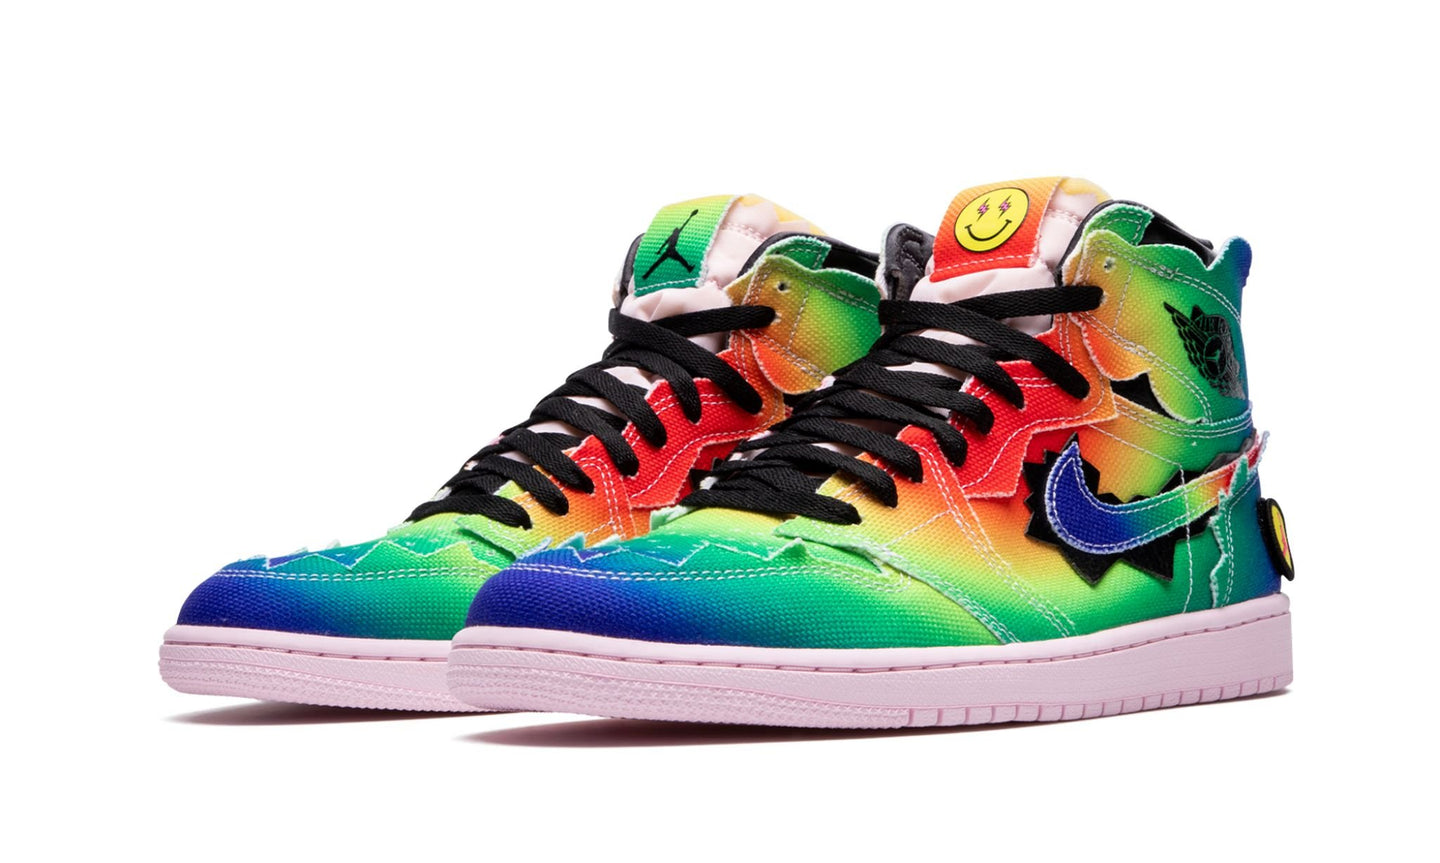 Jordan Air Jordan 1 High Retro J.Balvin